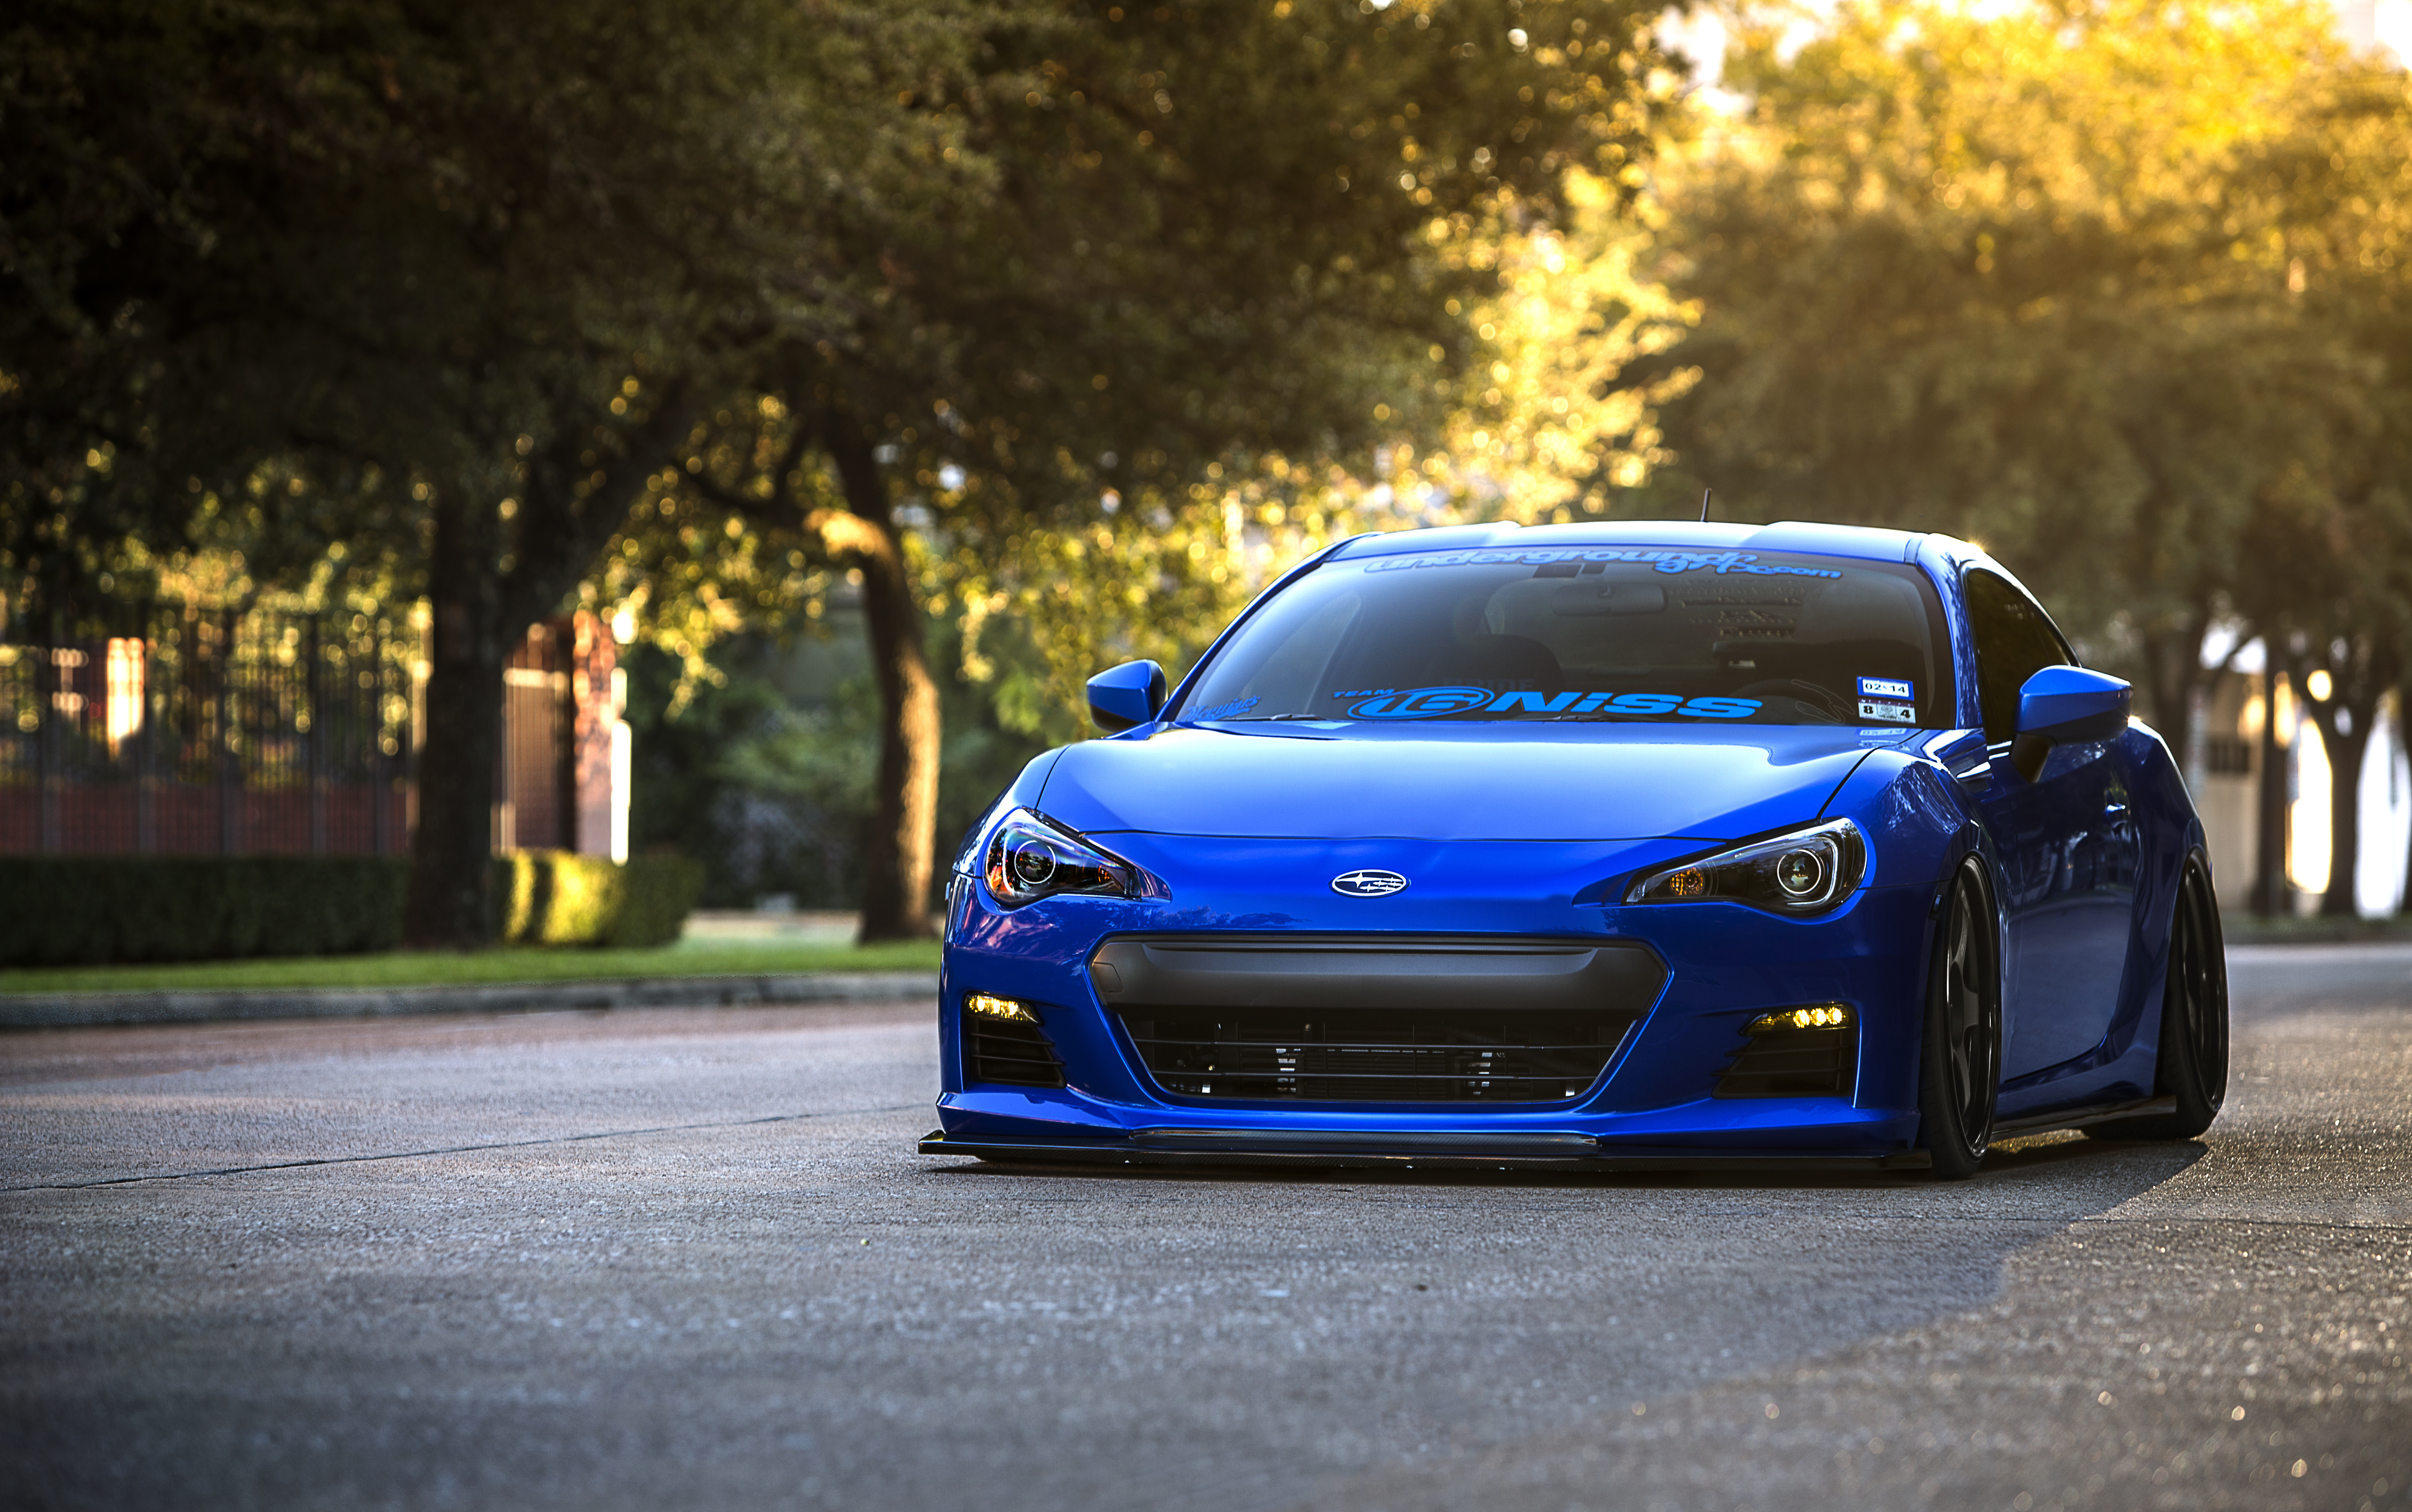 141917 download wallpaper Sports, Subaru, Cars, Sports Car, Coupe, Compartment, Front, Brz screensavers and pictures for free